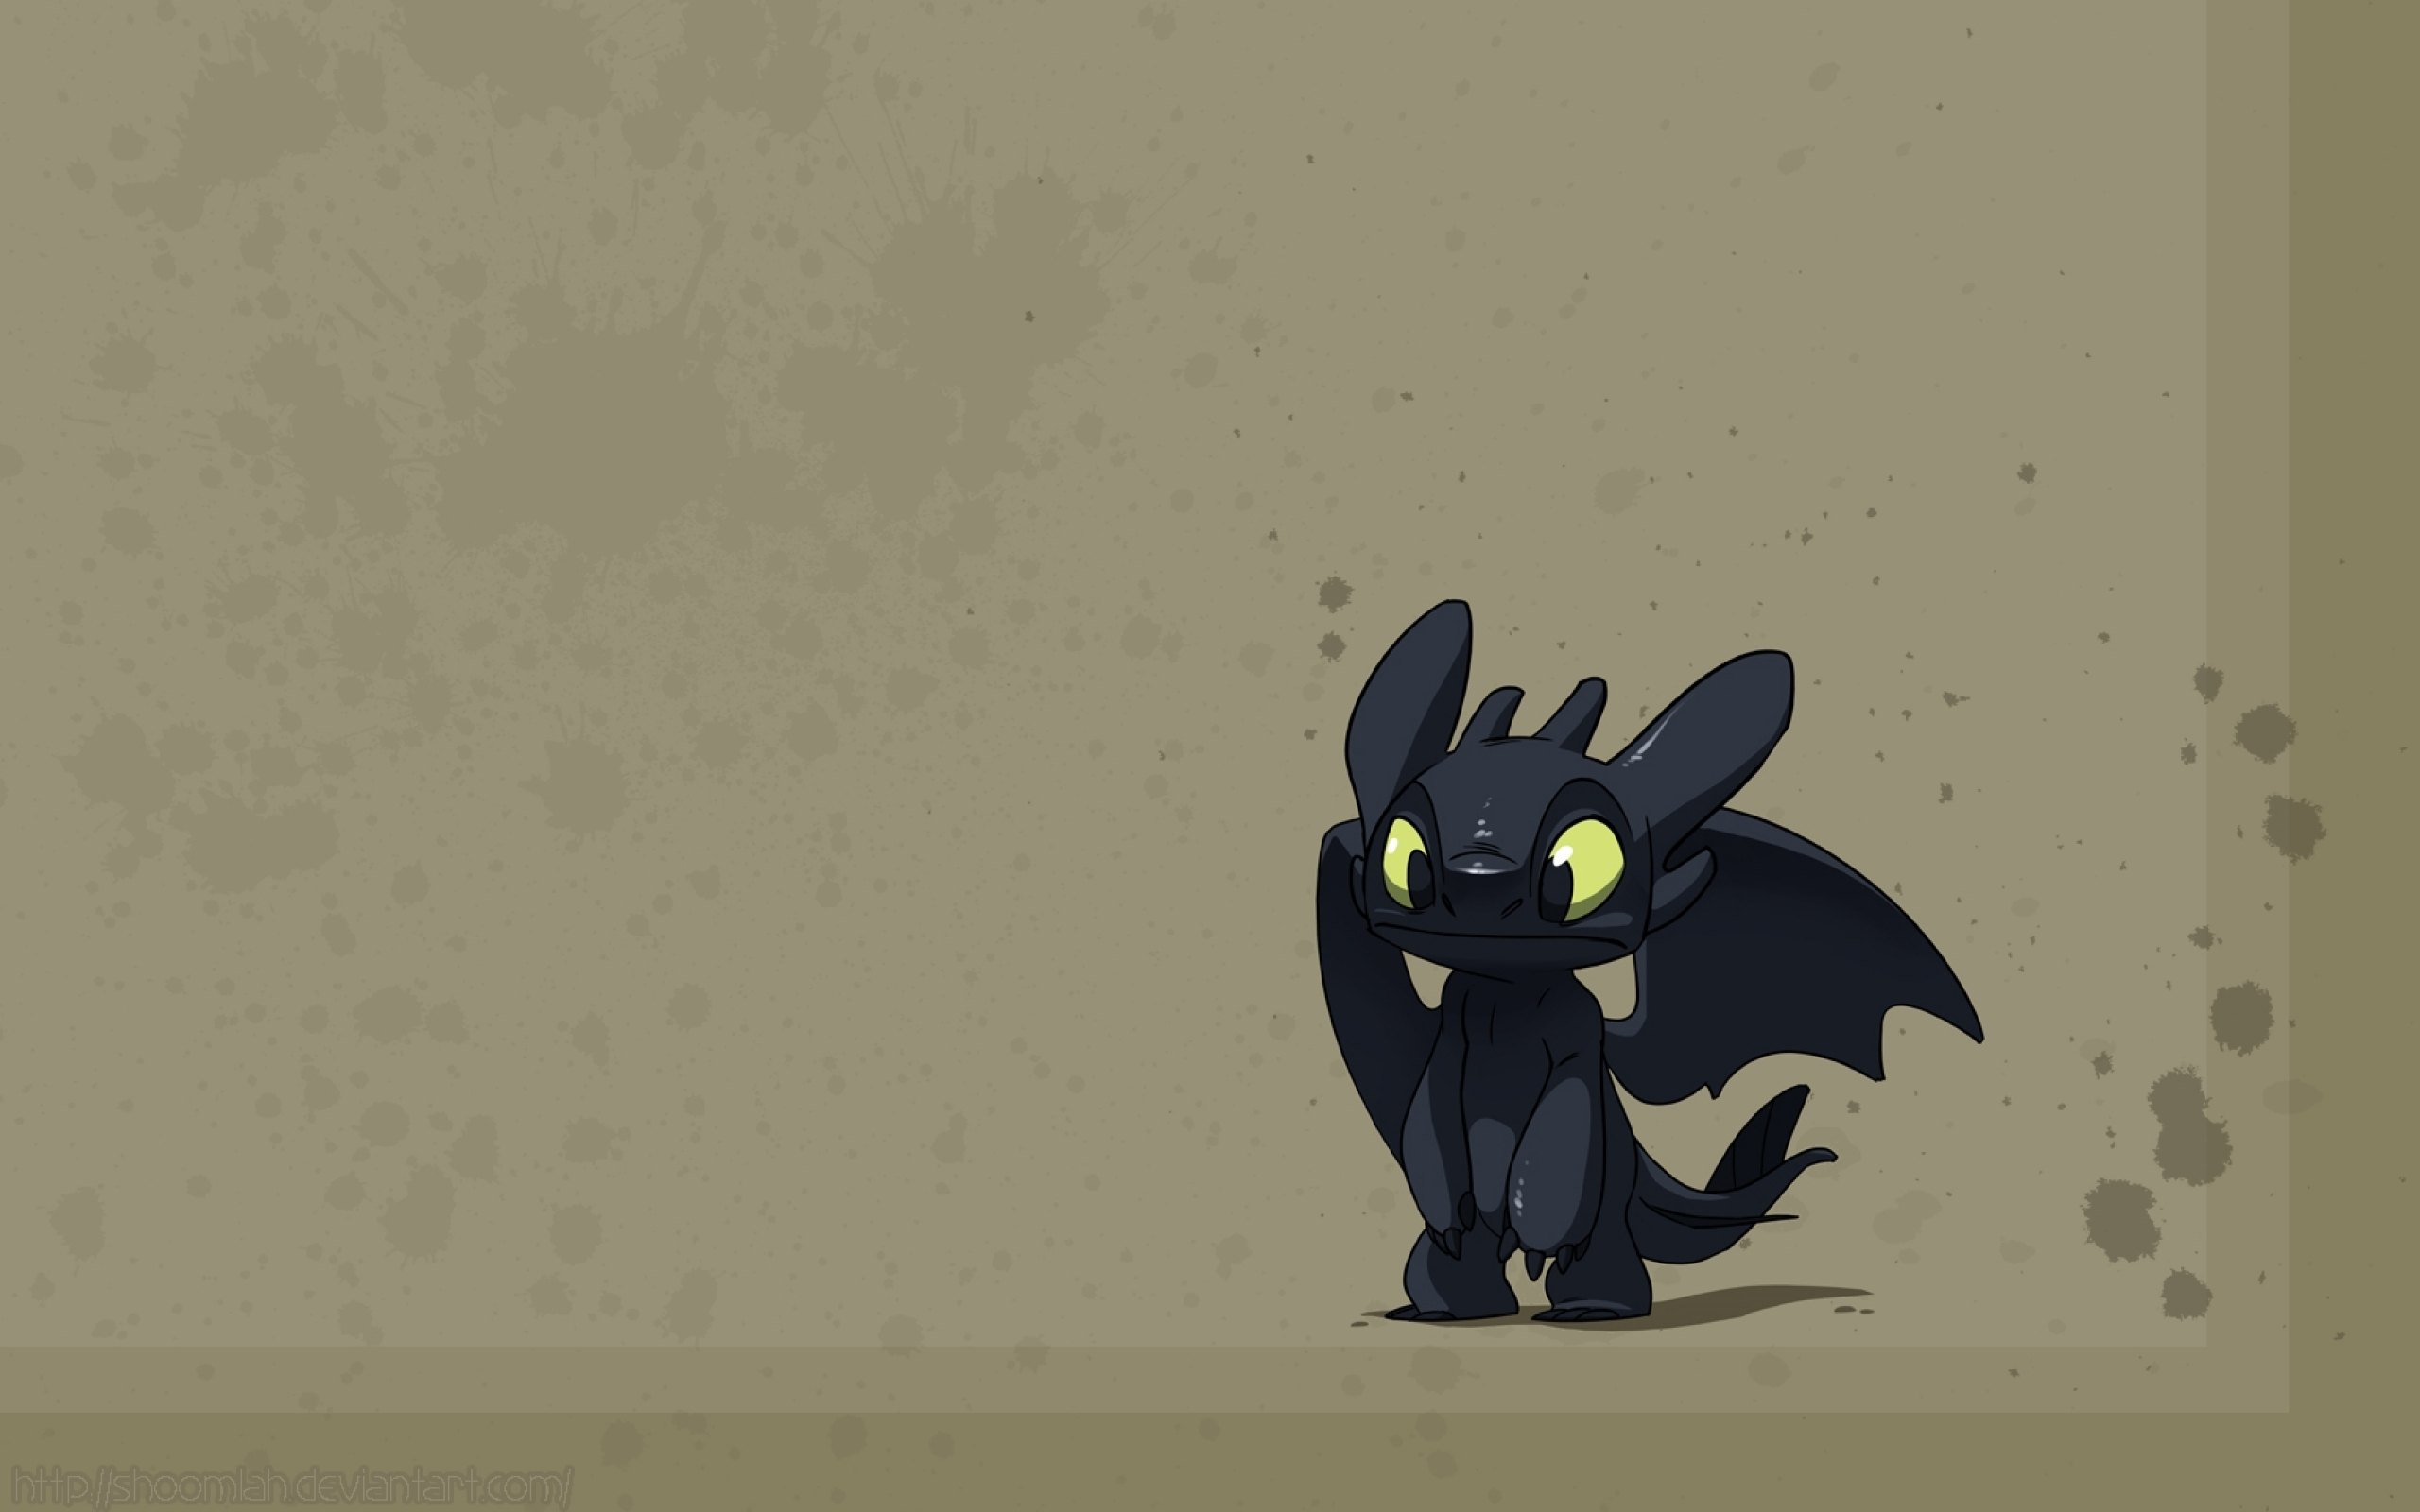 toothless how to train your dragon stitch 1680x1050 wallpaper Art HD 2560x1600